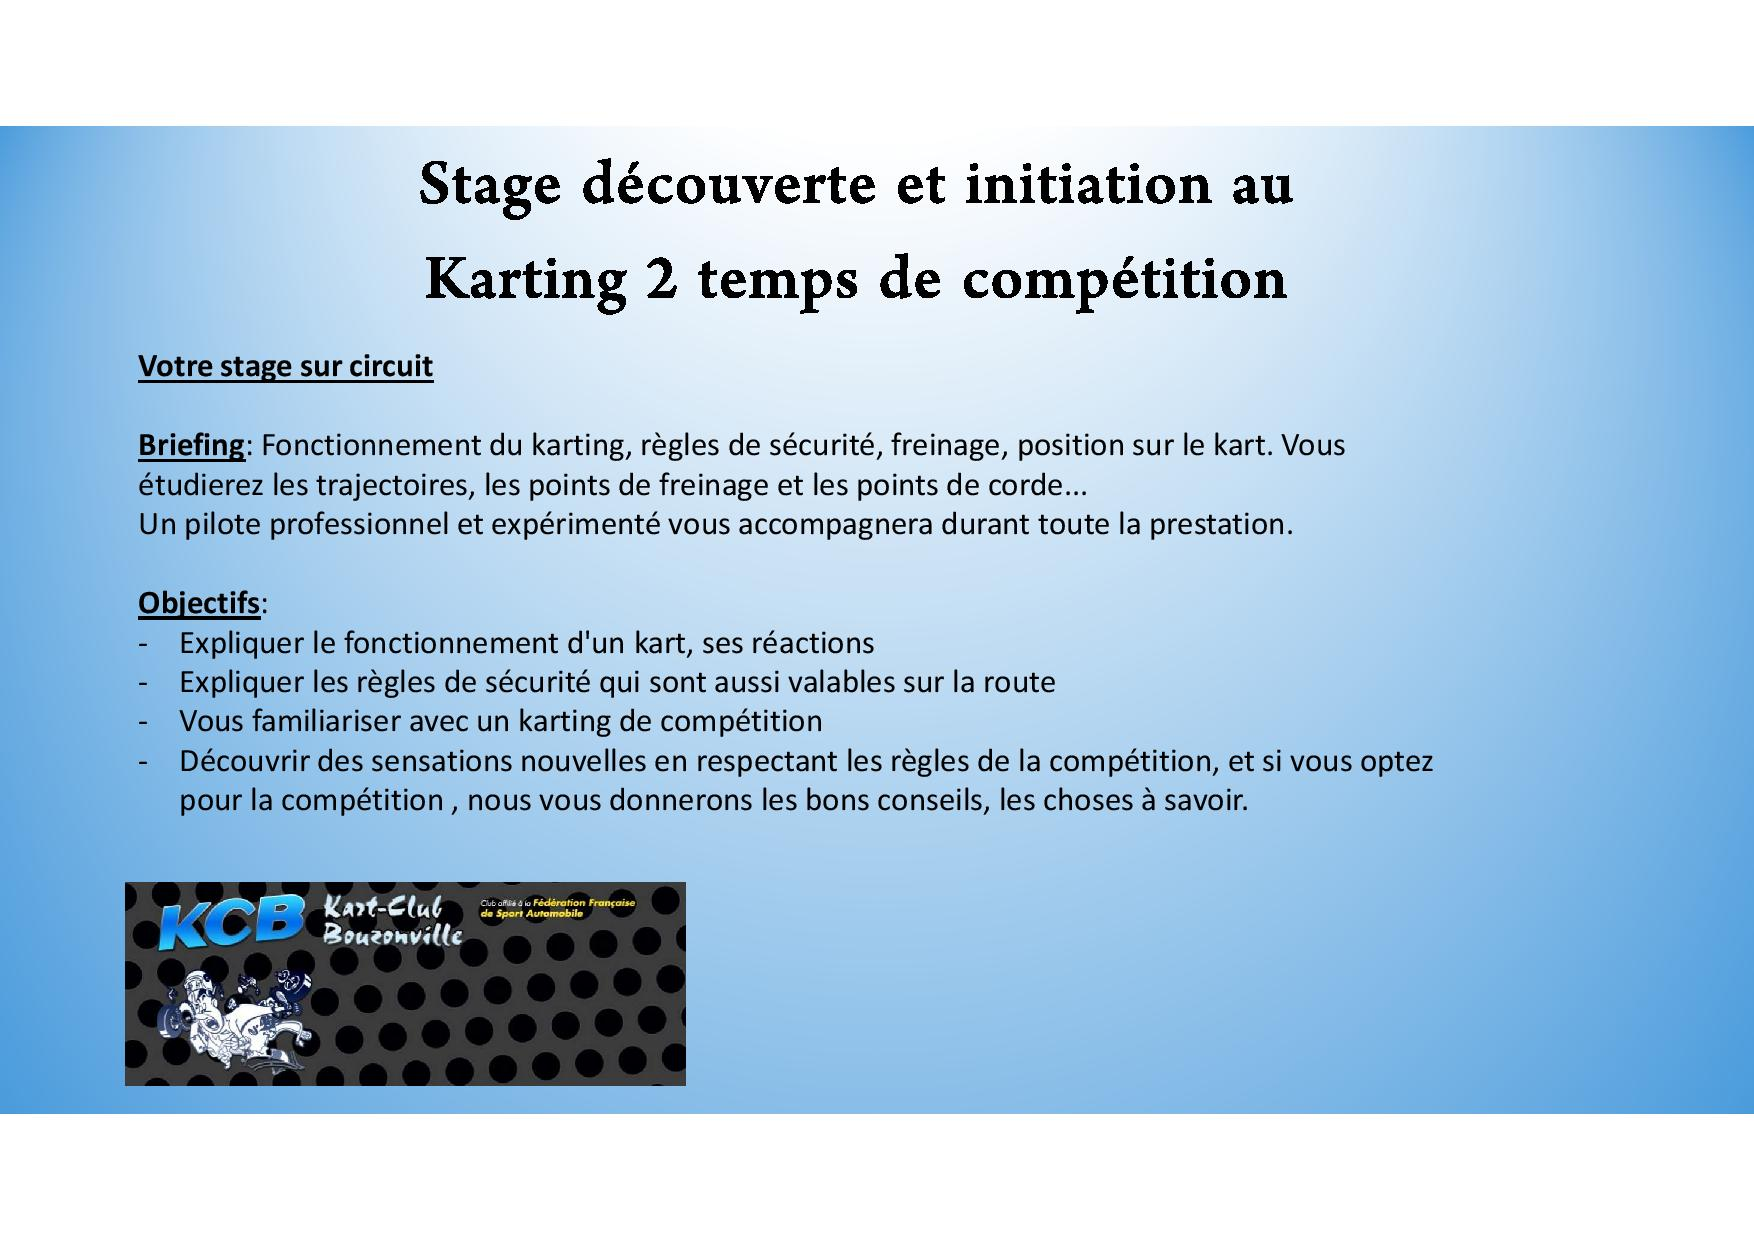 Stage decouverte et initiation au karting 2 temps page 2